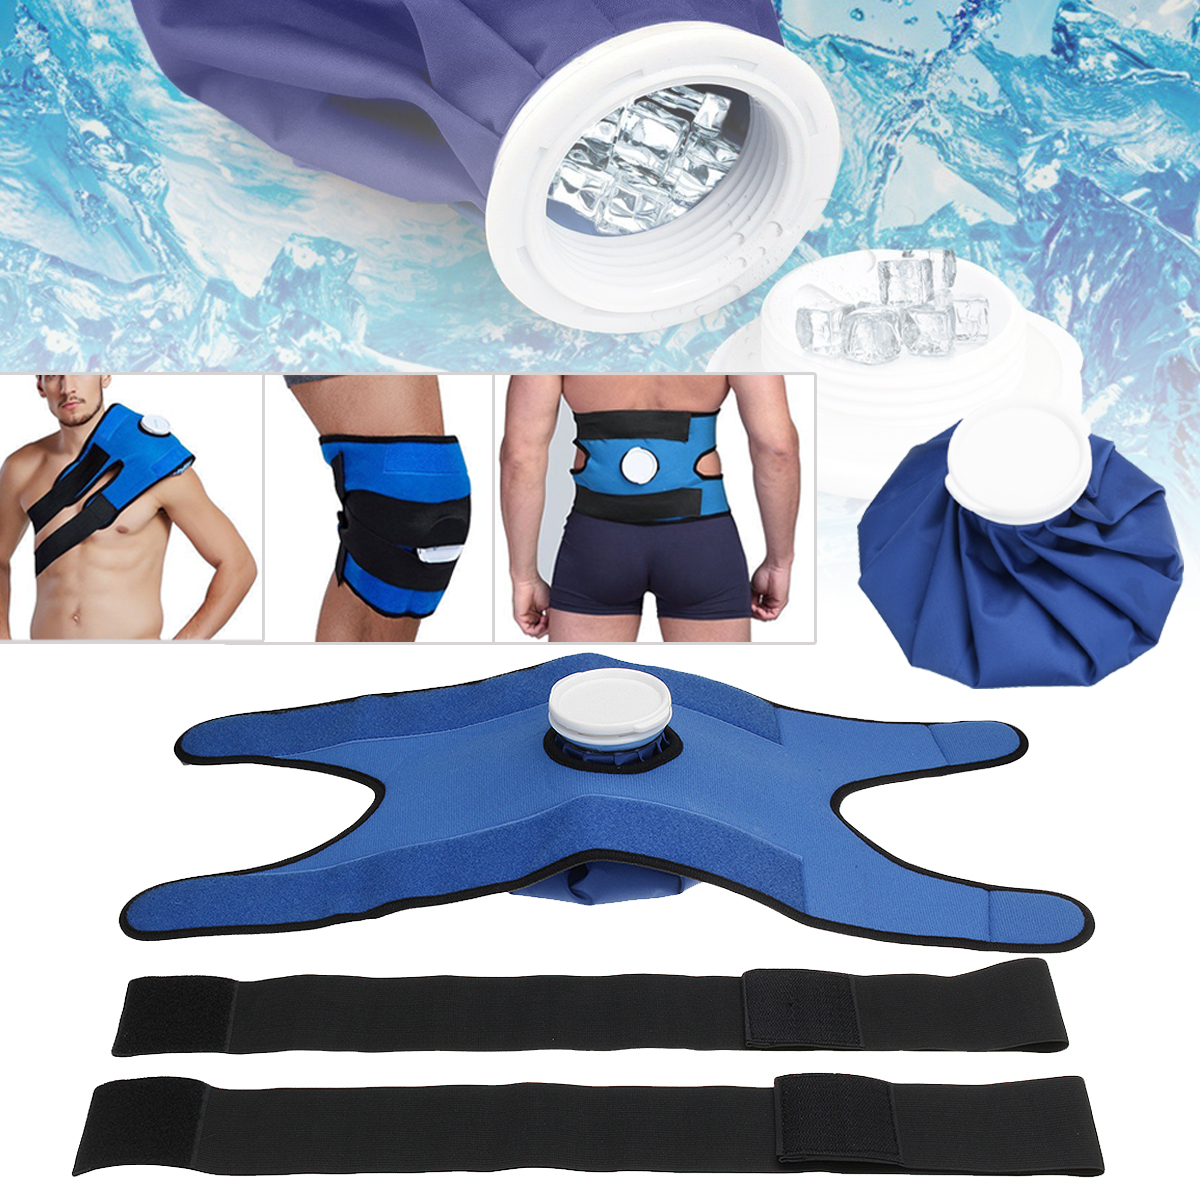 New Pain Relief Hot Cold Therapy Reusable Ice Bag Pack Wrap for knee Shoulder Back Muscle Waist Relaxing Health Care Blue Brace reusable hot cold pack heat gel ice non toxic sports muscle back pain relief n